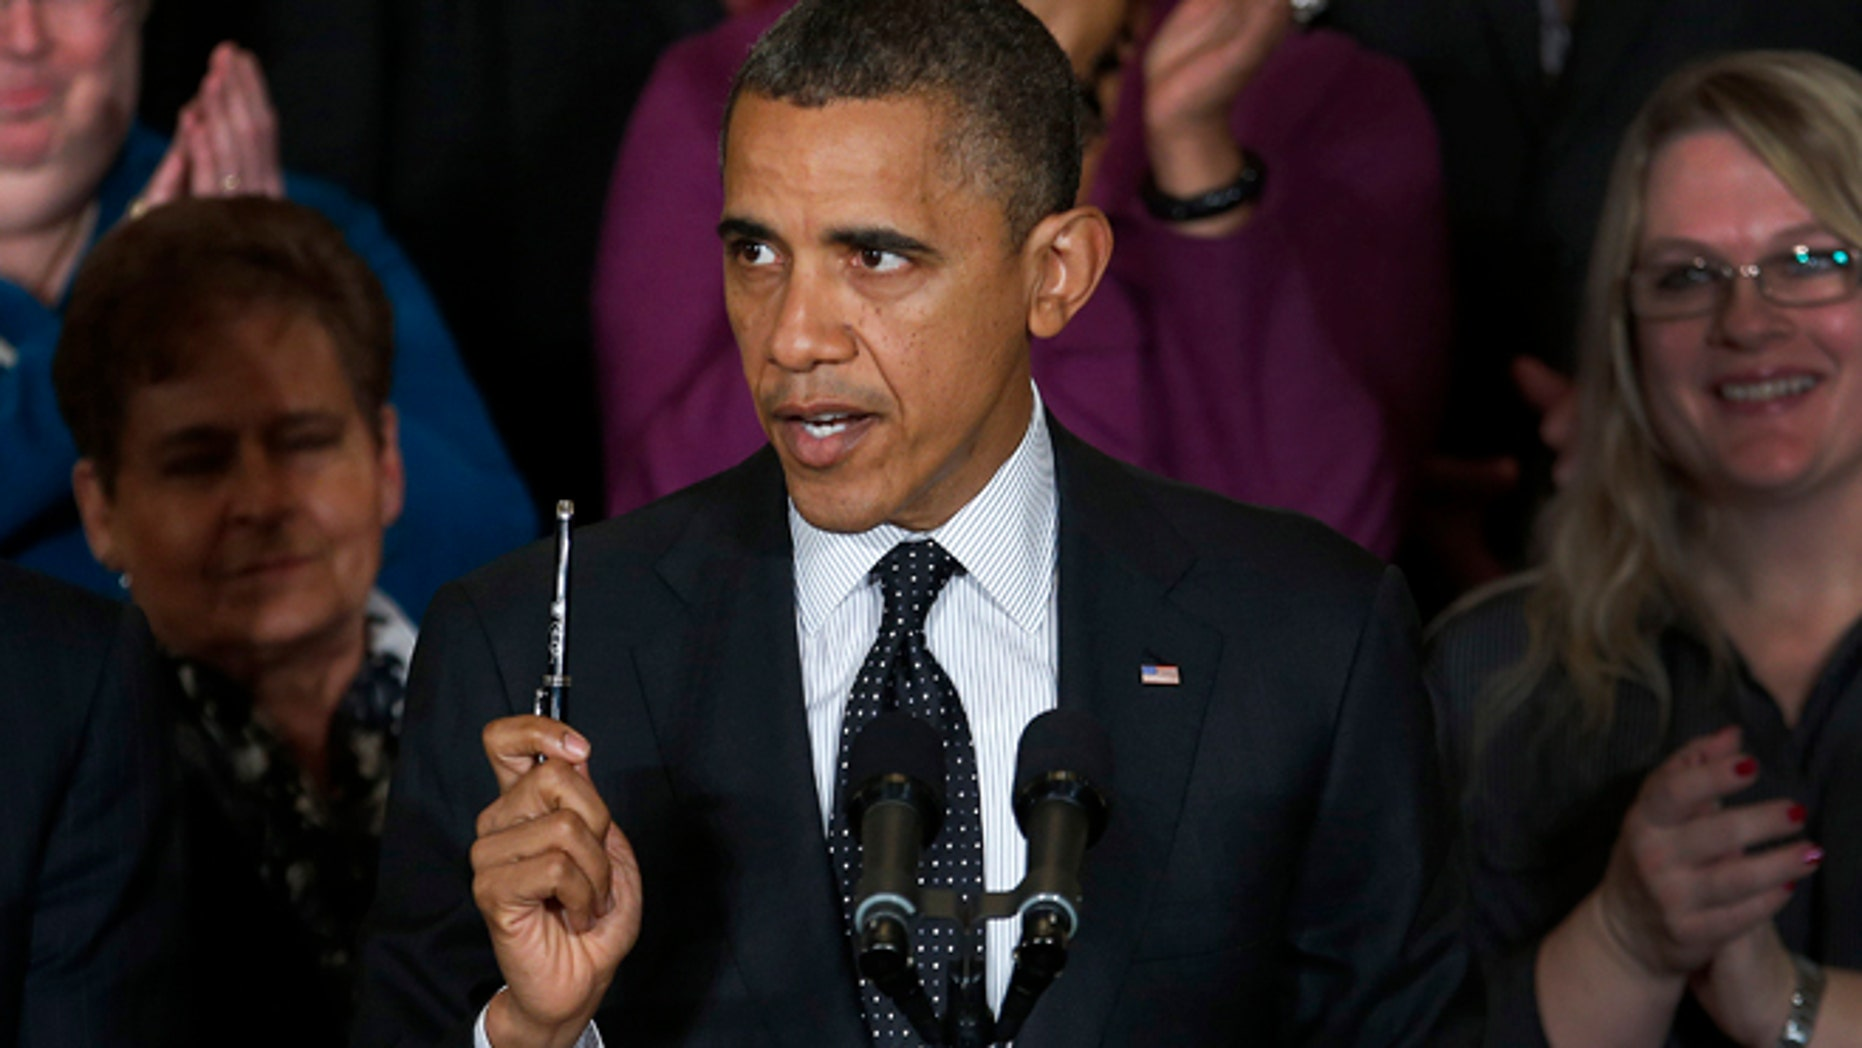 Nov. 9, 2012: President Barack Obama holds up a pen as he speaks about the economy and the deficit.